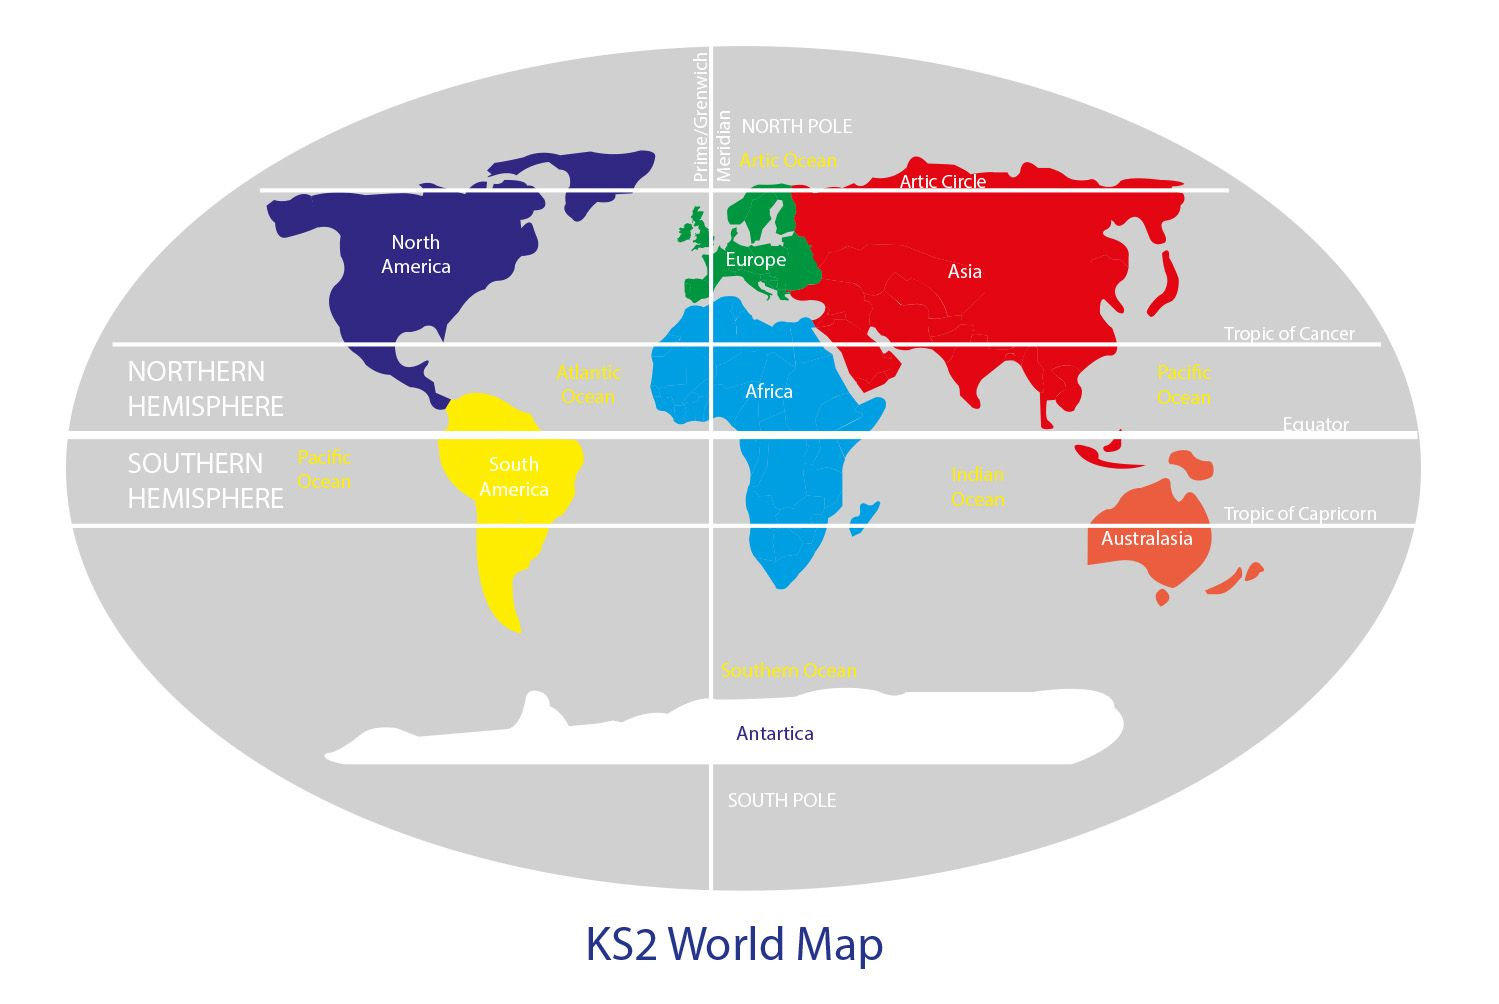 key stage 2 world map with continents  equator  northern and